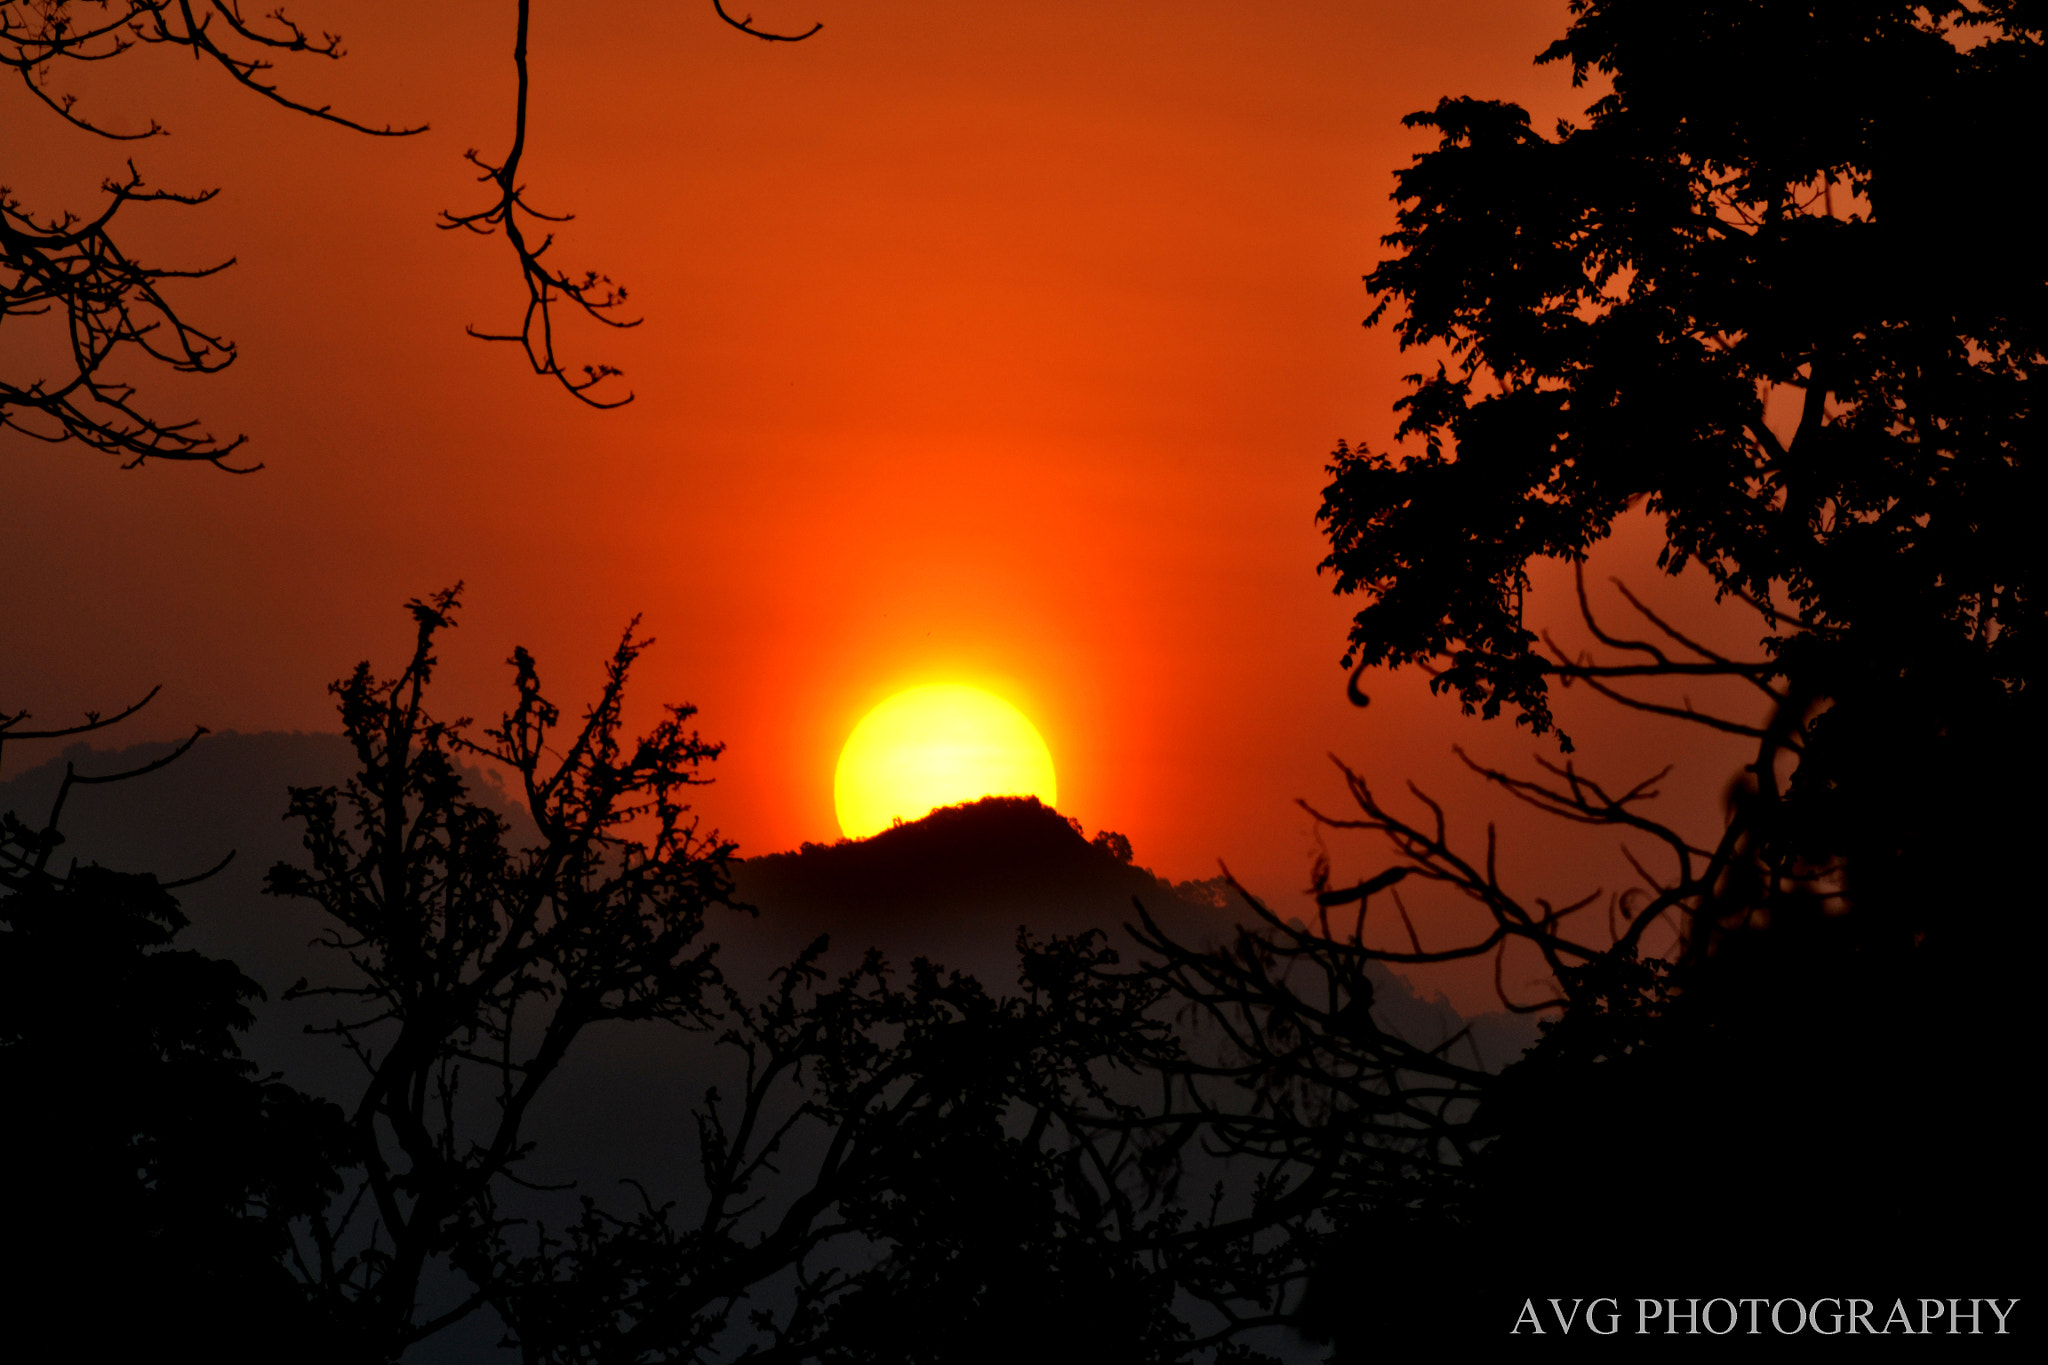 Photograph Dawn or Dusk - The End may be the Beginning by Aviral Gupta on 500px